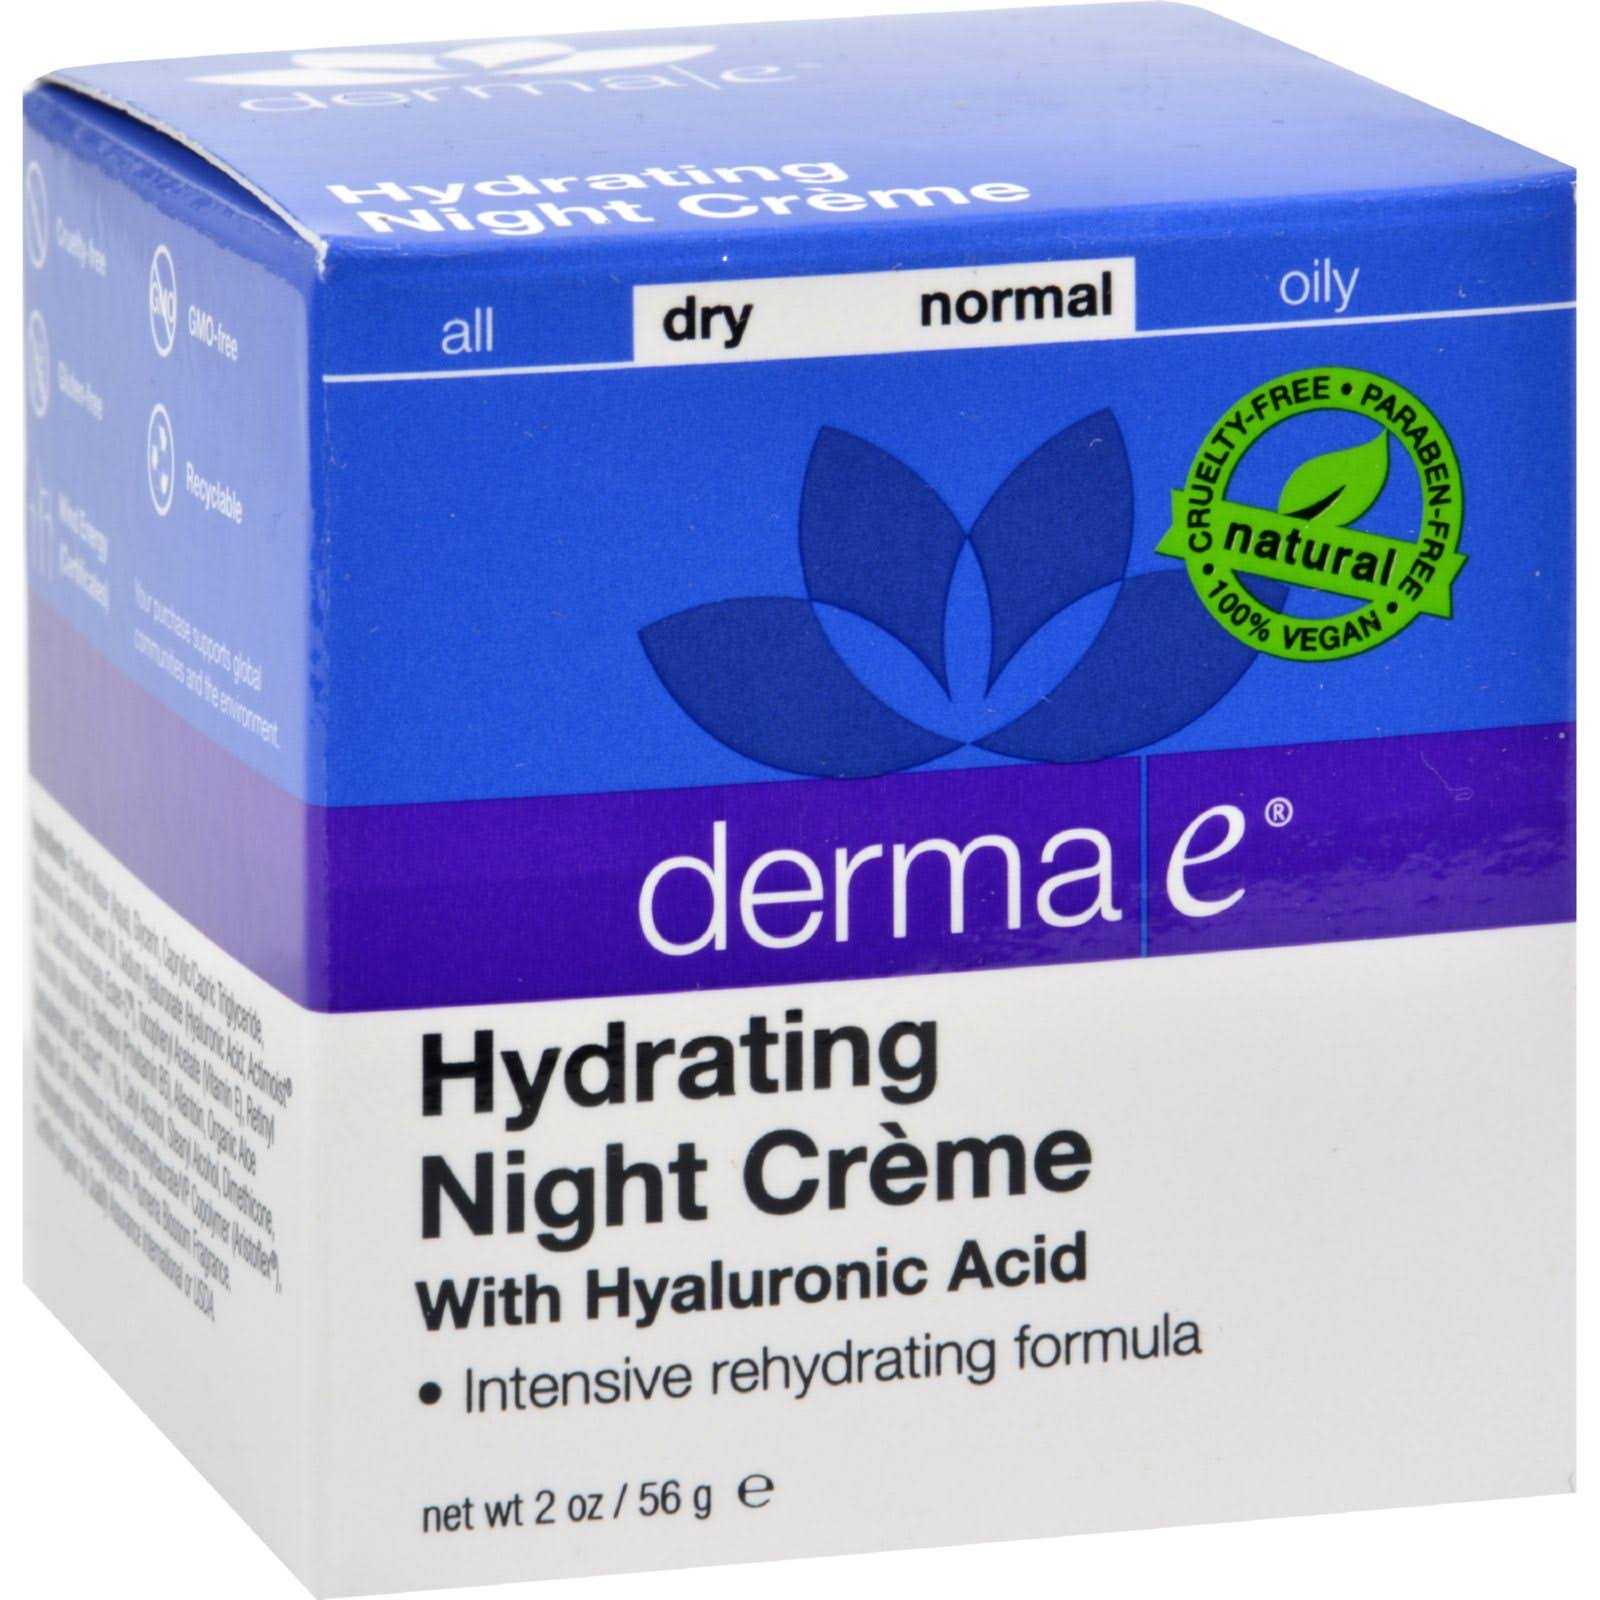 Derma E Hydrating Night Crème with Hyaluronic Acid - 2oz